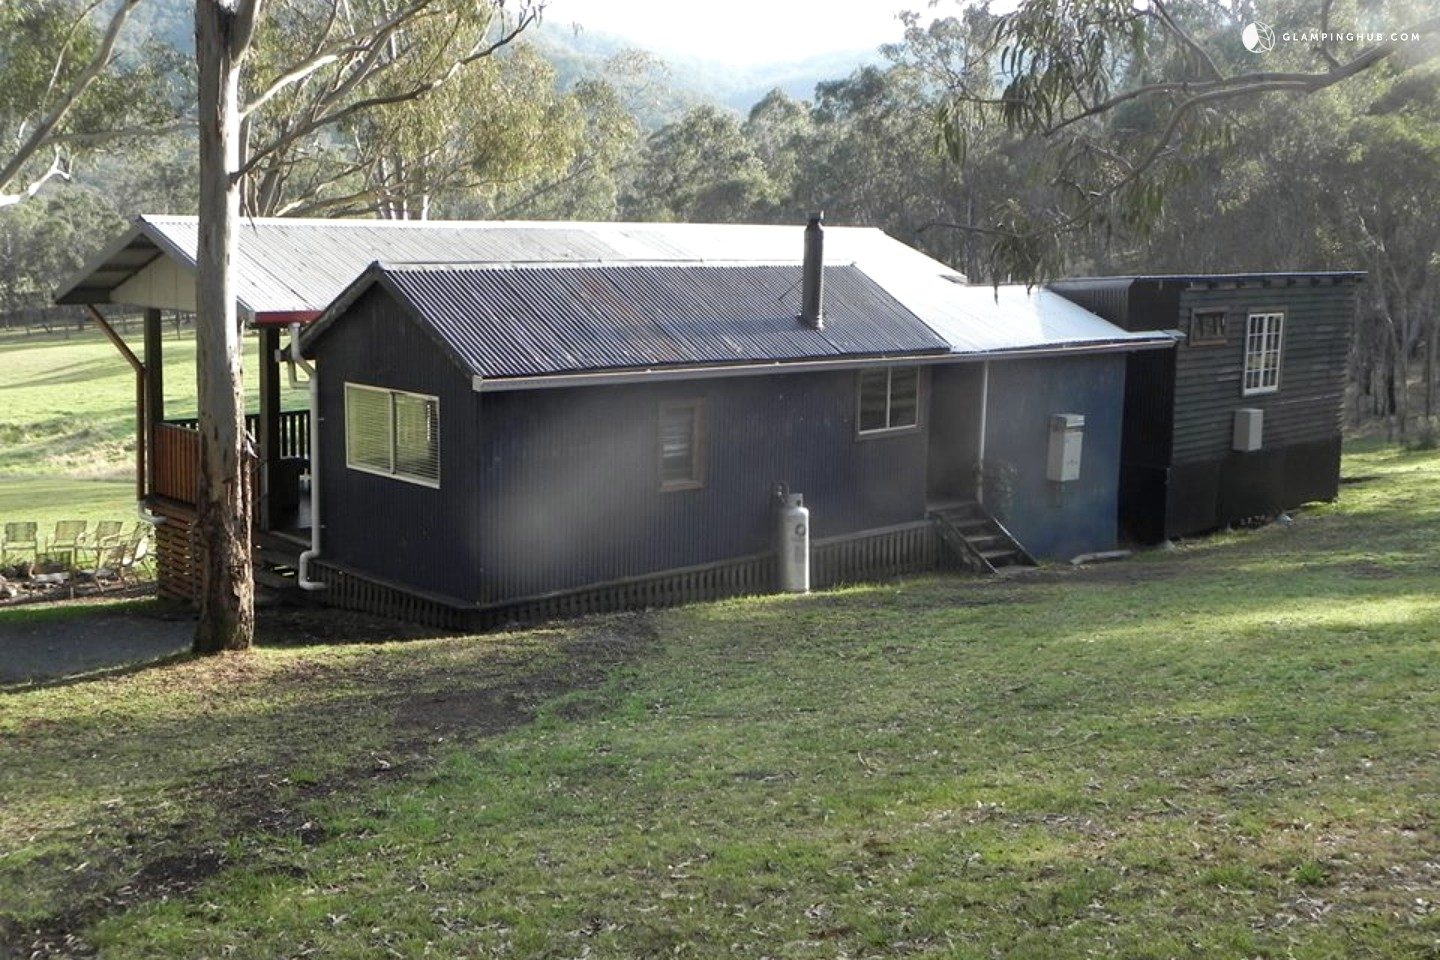 Camping cabin near toowoomba for Nearby campgrounds with cabins